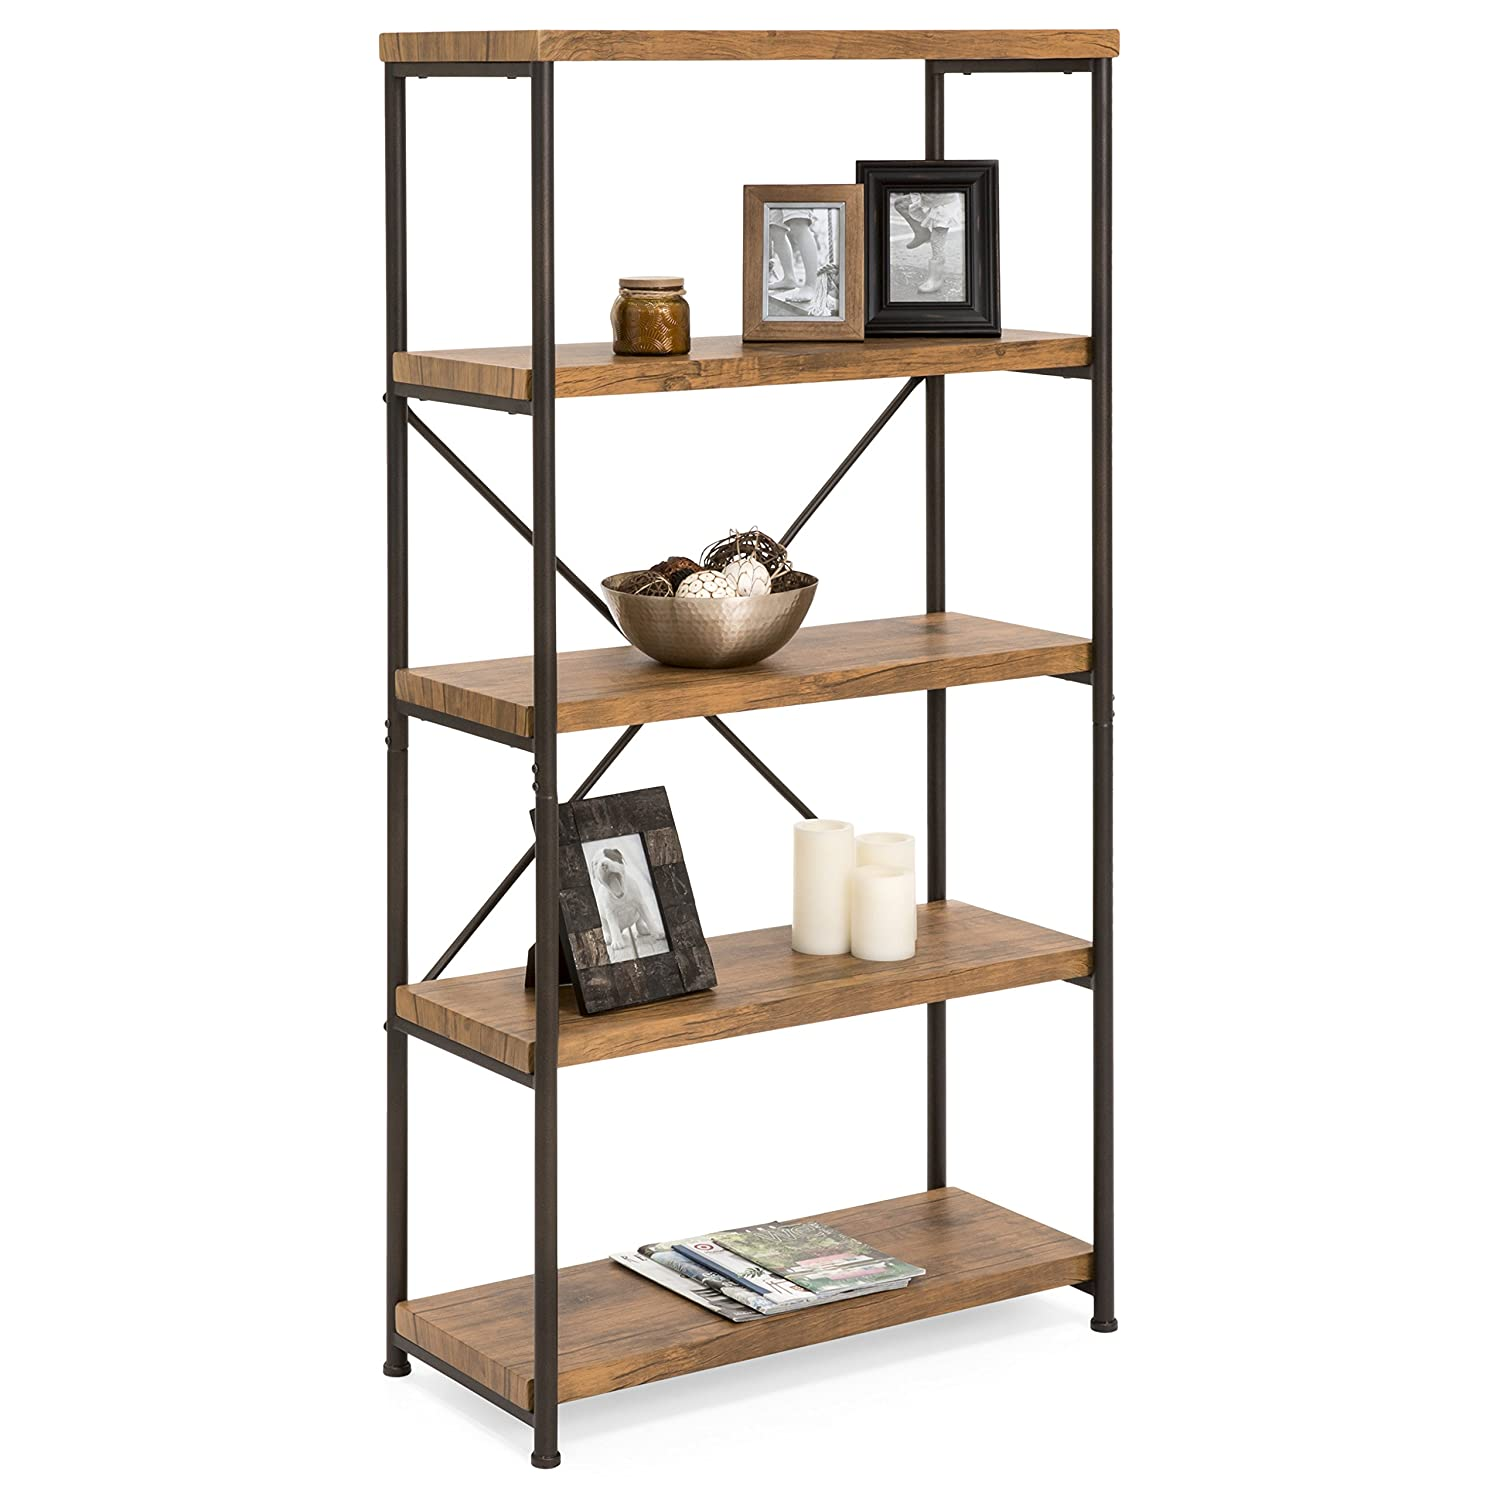 Best Choice Products 4-tier Rustic Industrial Bookshelf Display Dã©cor  Accent For Living Room, Bedroom, Office With Metal Frame, Wood Shelves,  Brown